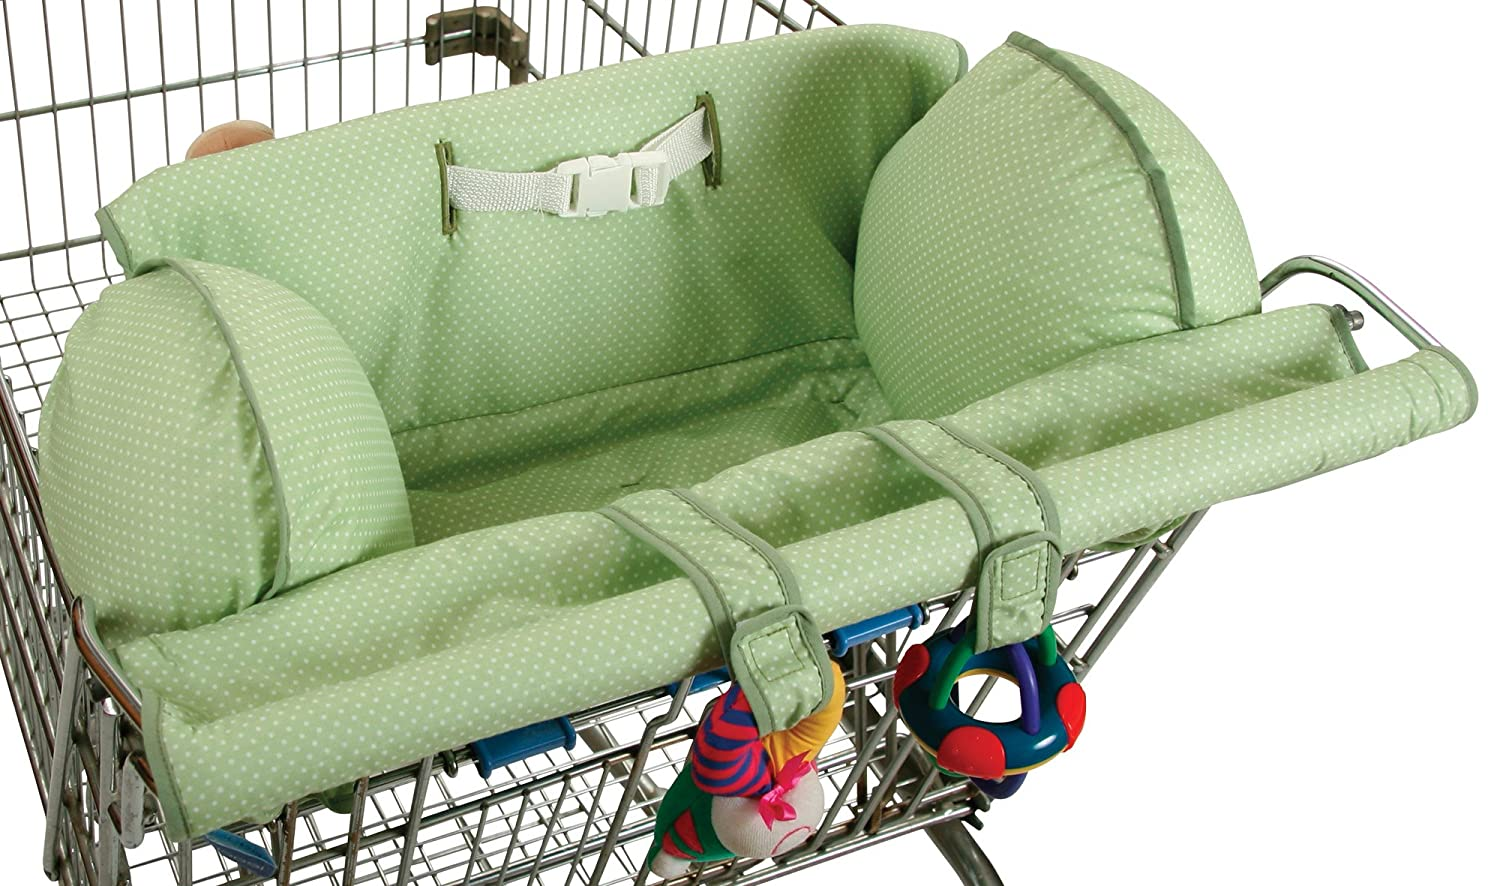 Leachco Prop 'R Shopper Shopping Cart Cover, Green Pin Dot 13563